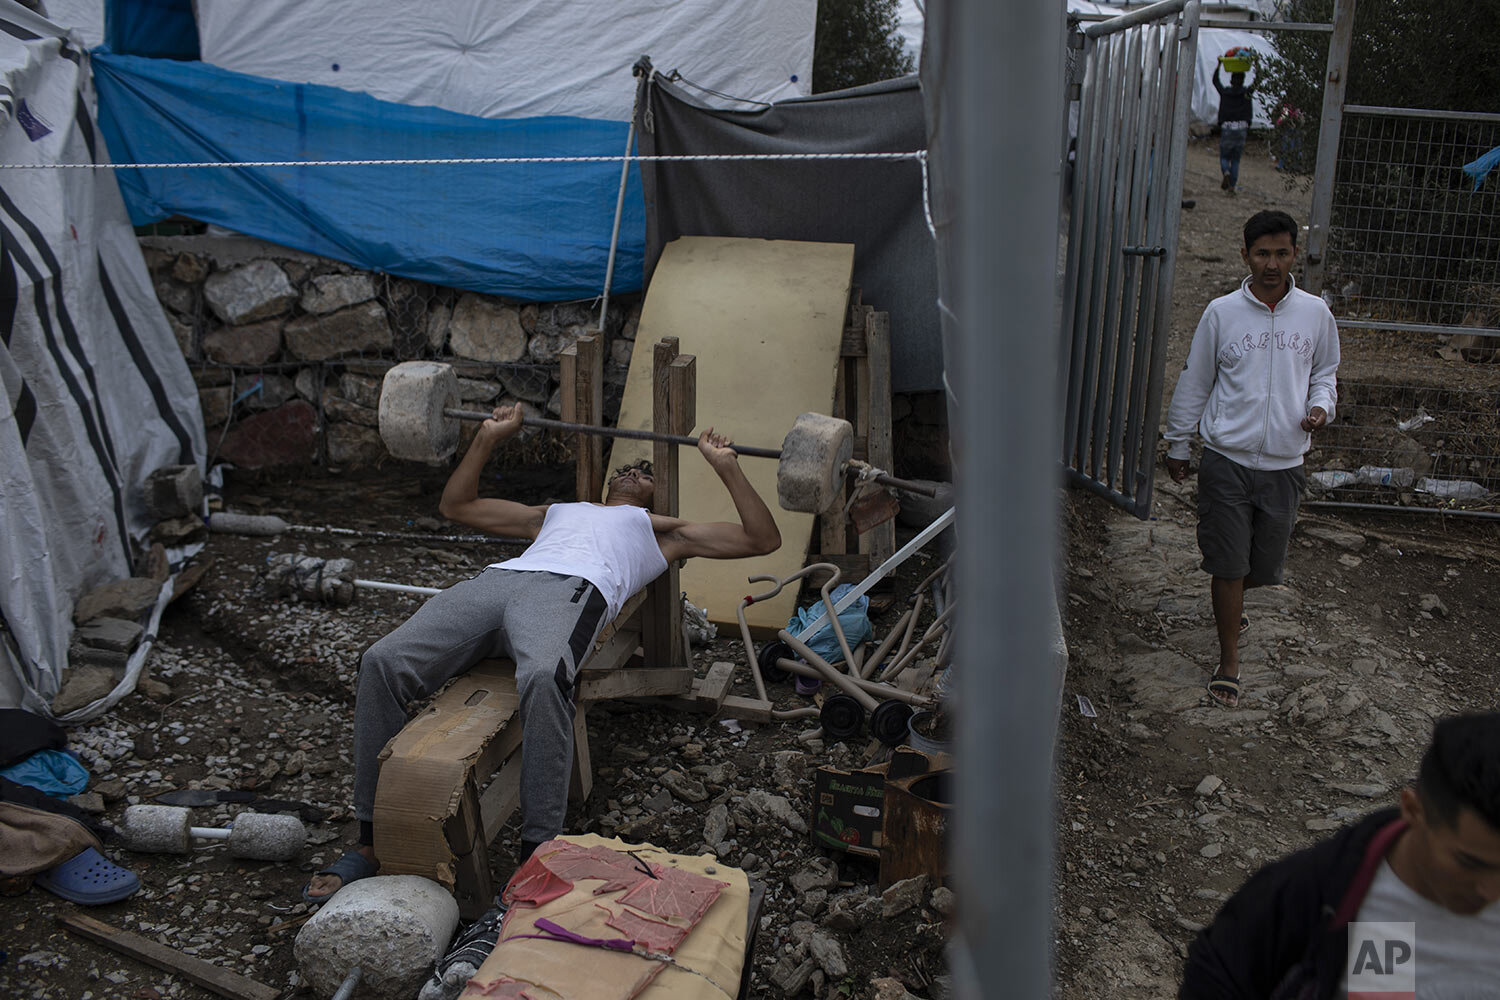 A man from Kabul, Afghanistan, works out on a makeshift bench in the overcrowded Moria refugee and migrant camp, Lesbos island, Greece, Tuesday, Oct. 8, 2019. (AP Photo/Petros Giannakouris)